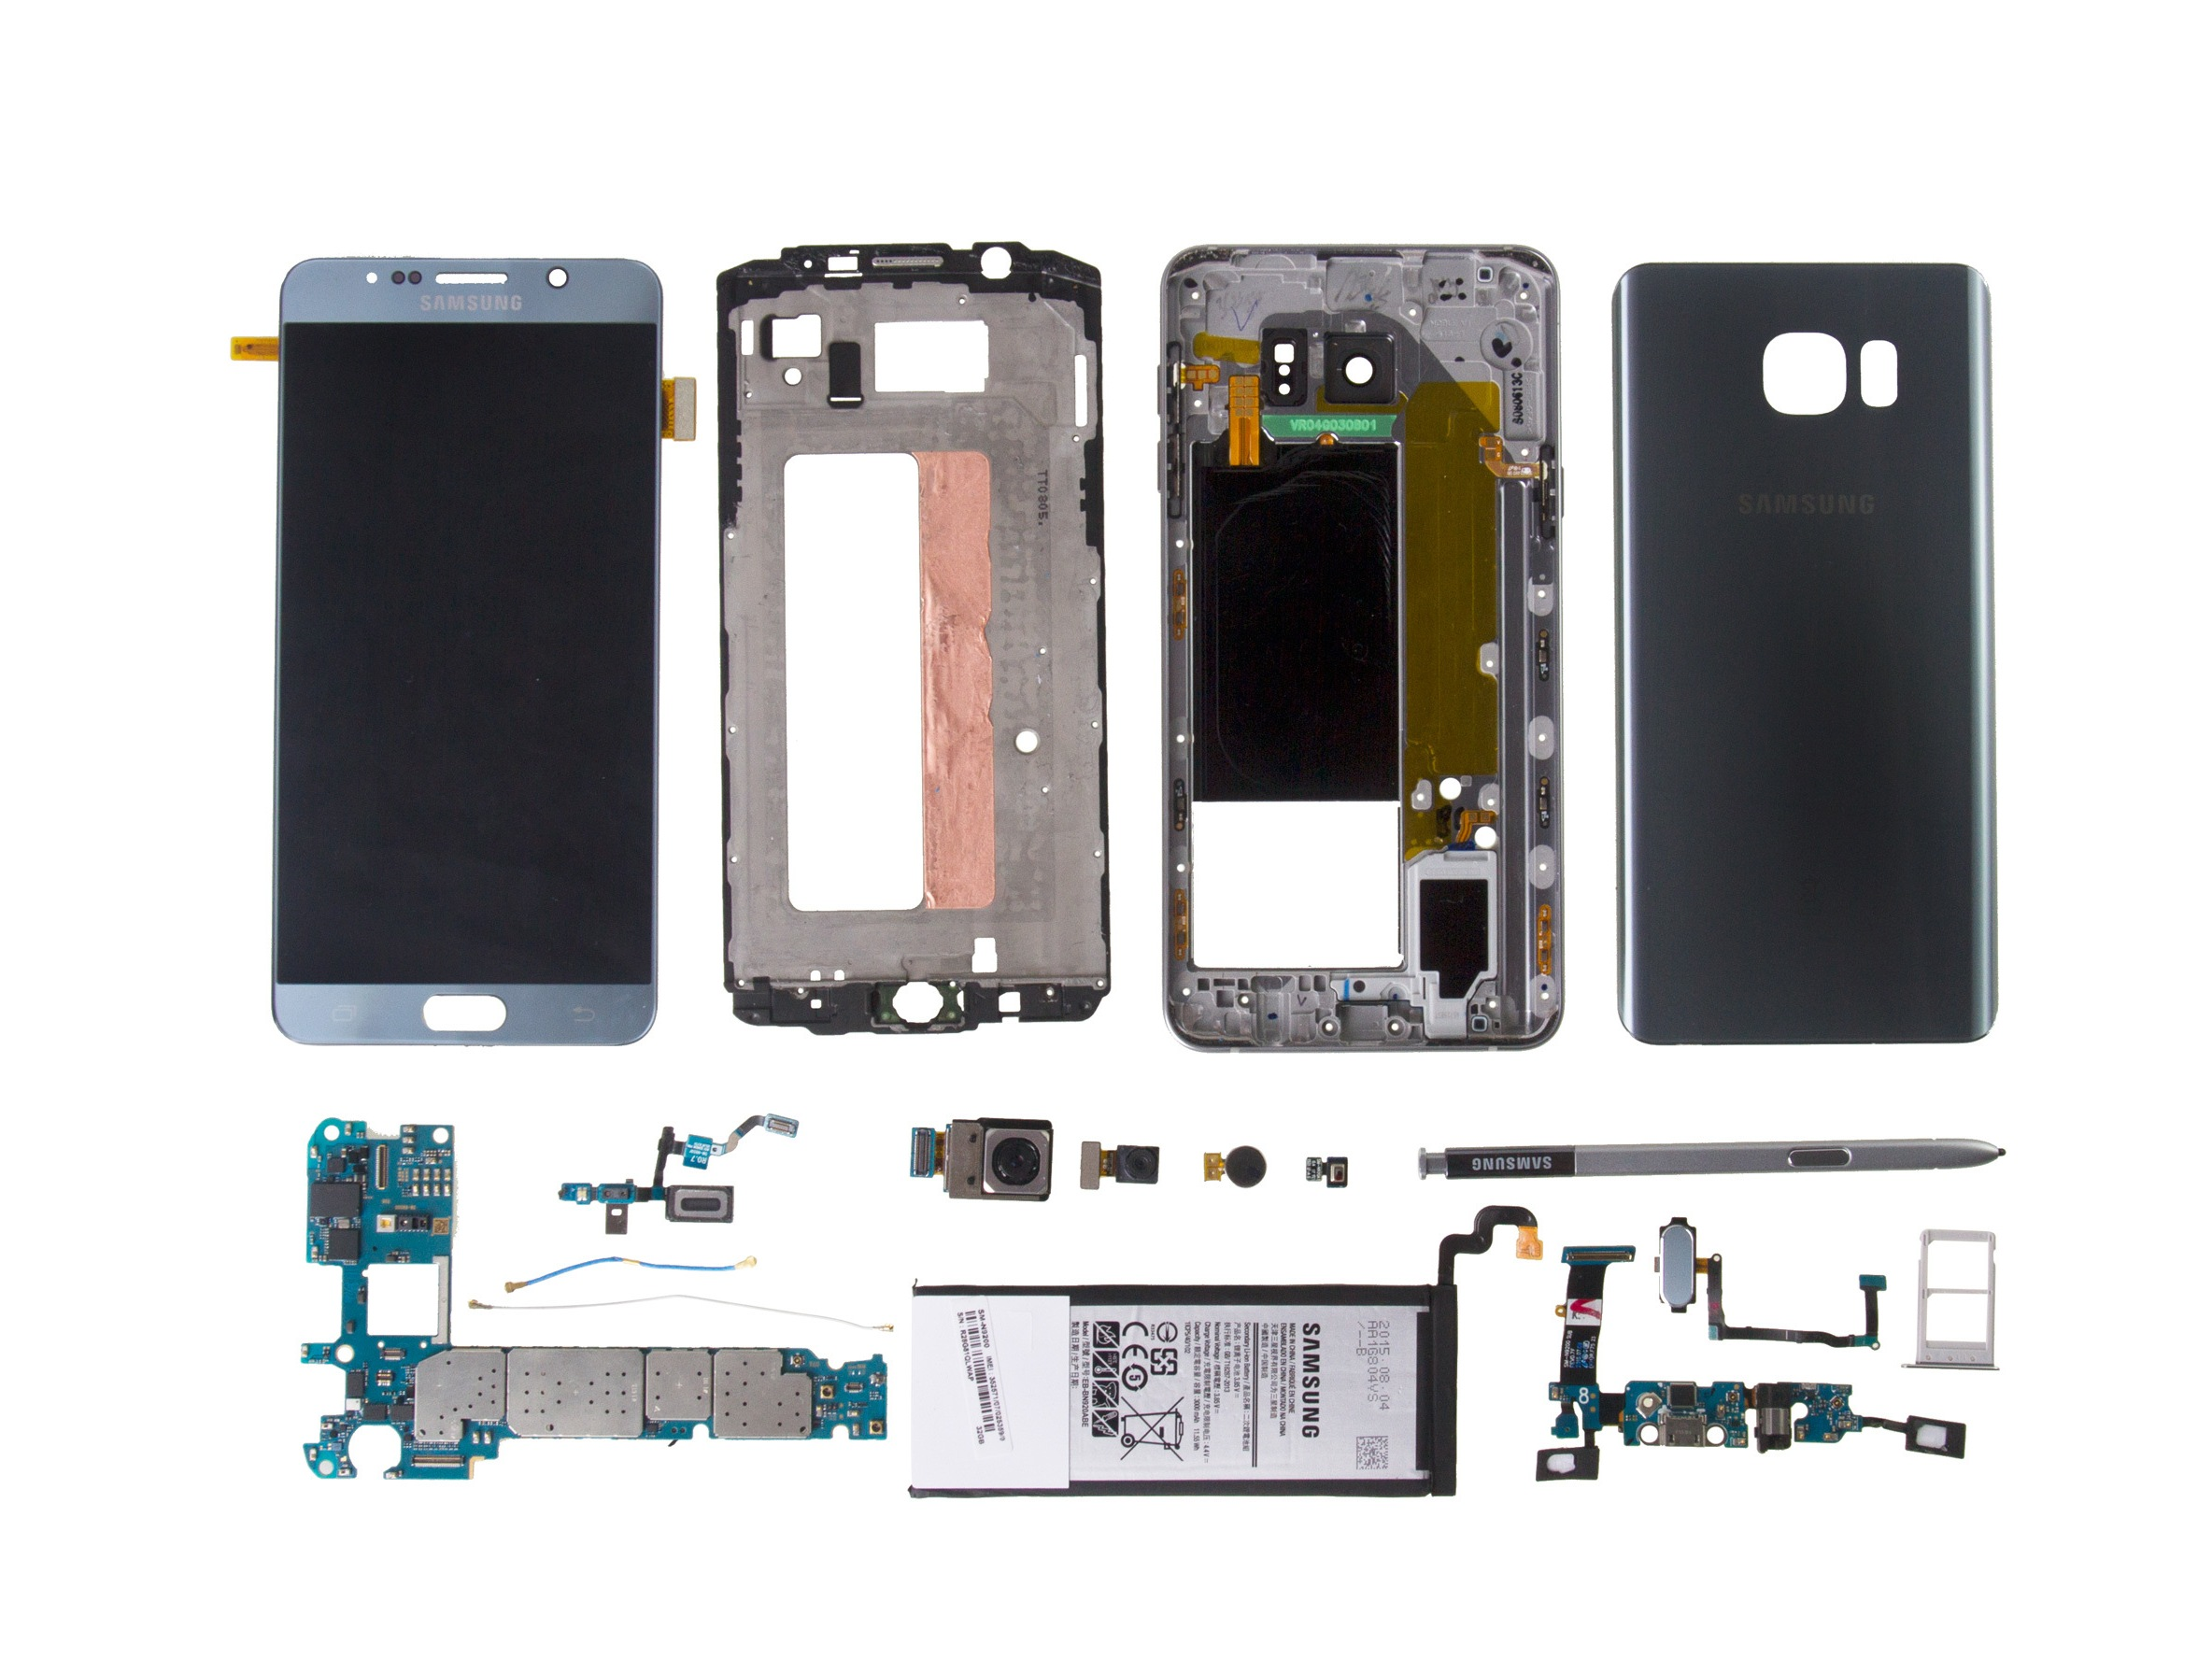 Iphone 8 Plus Internals Wallpaper Samsung Galaxy Note5 Teardown Ifixit